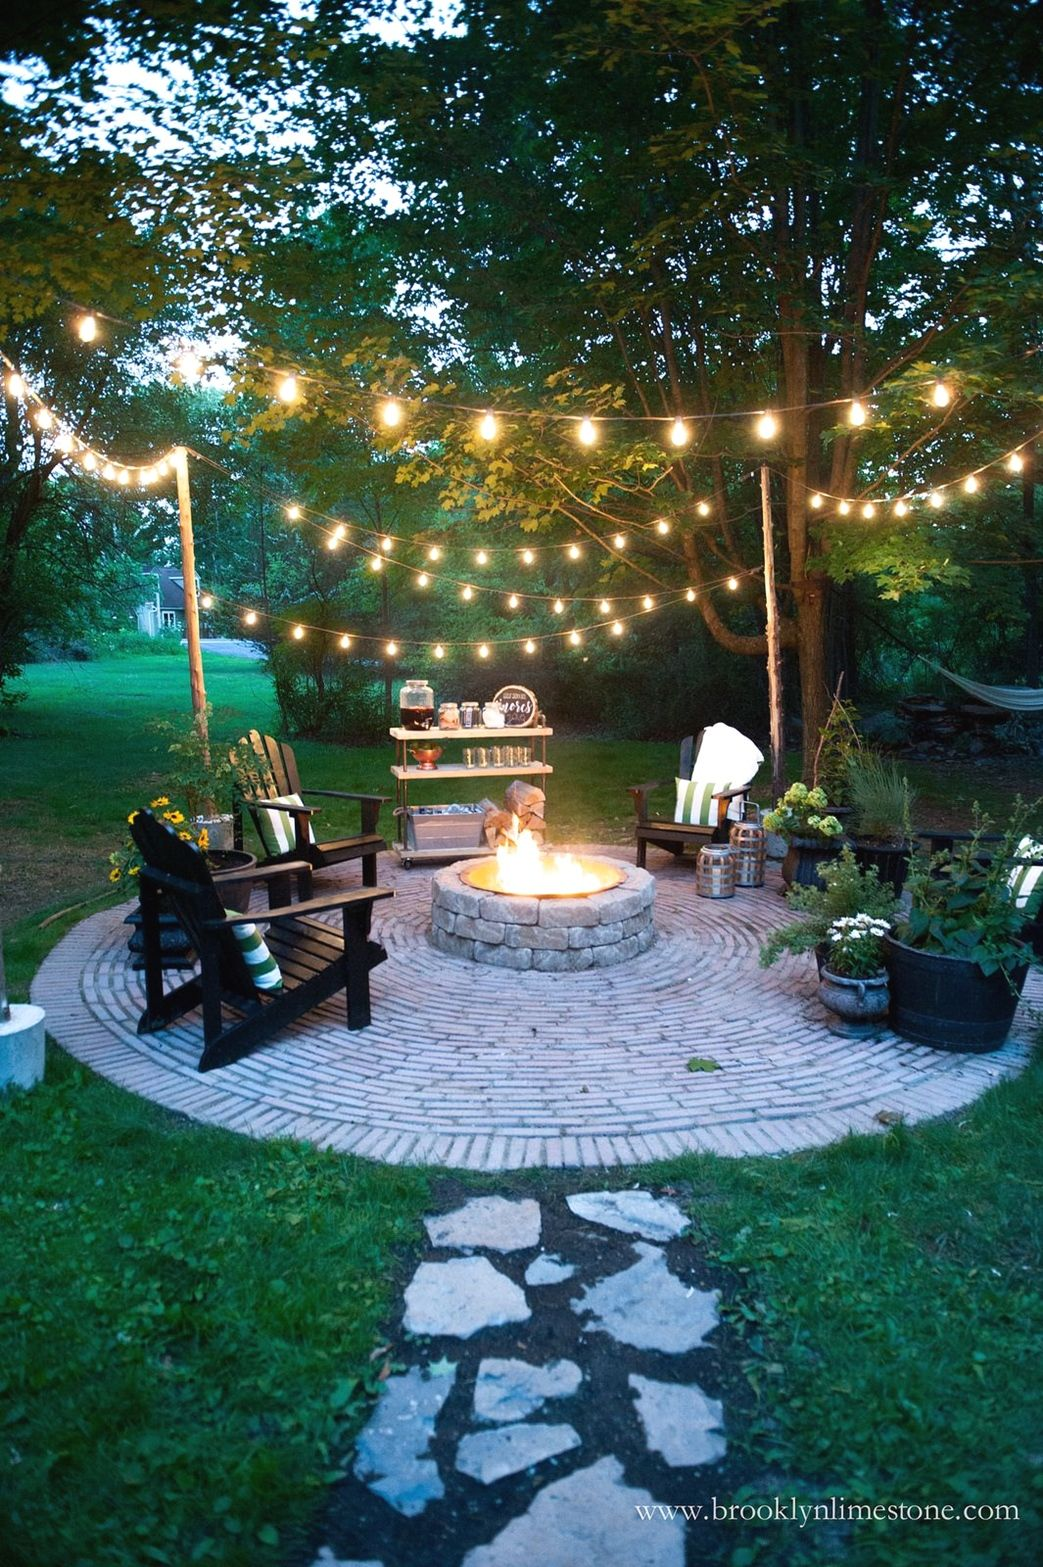 local landscaping companies - Local Landscaping Companies Out In The Back Pinterest Backyard